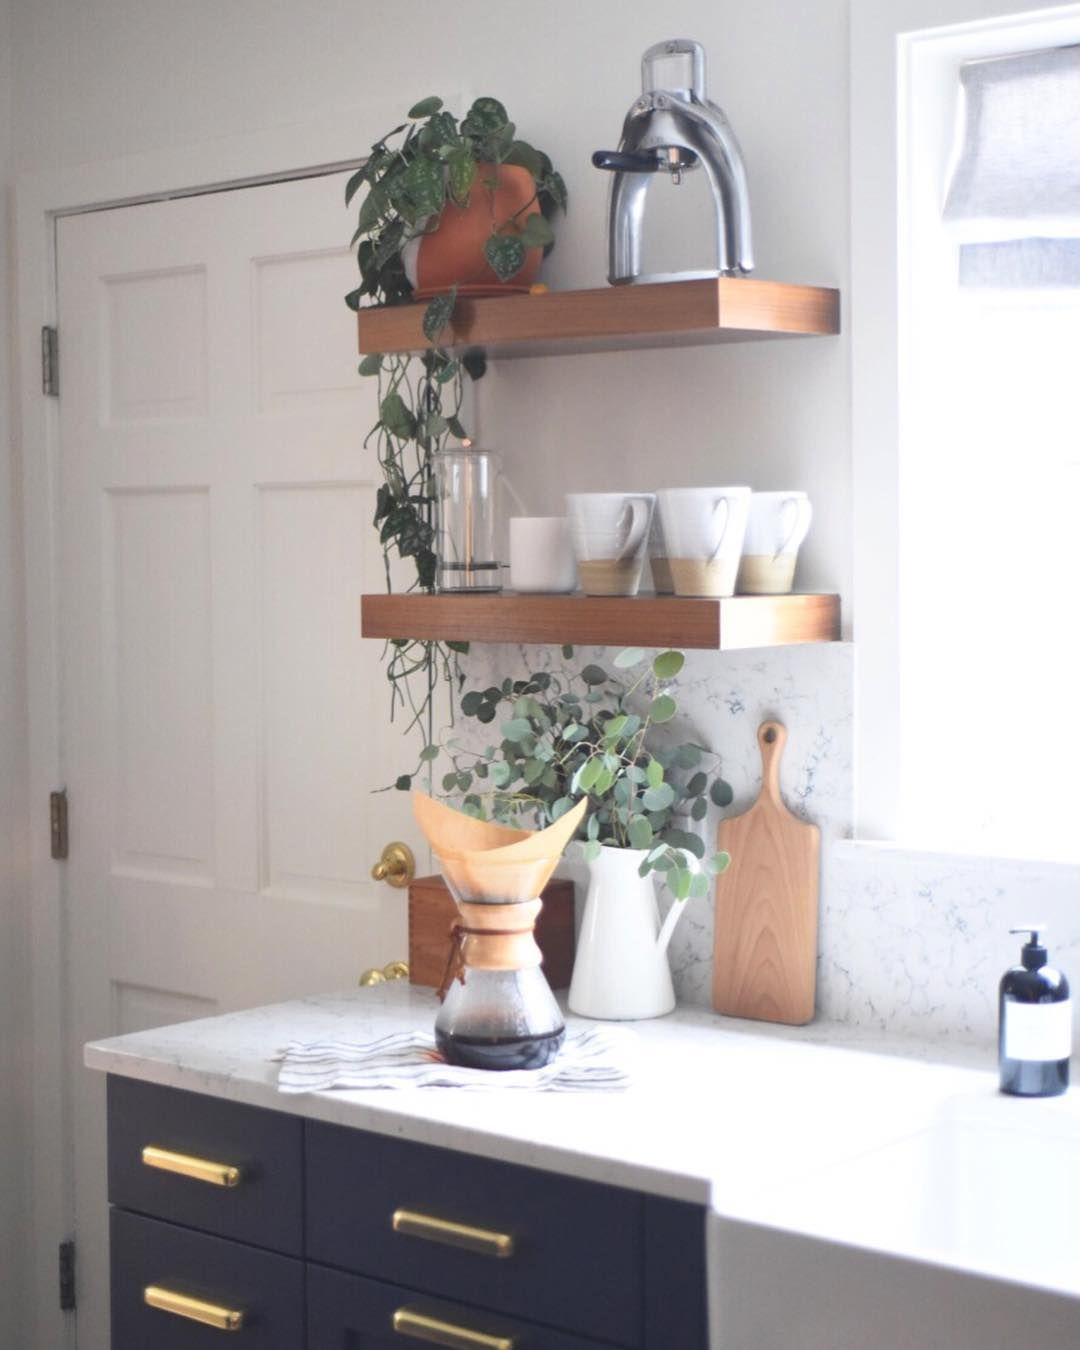 Pour Over Coffee, Navy Cabinets, Plants, And Open Shelving